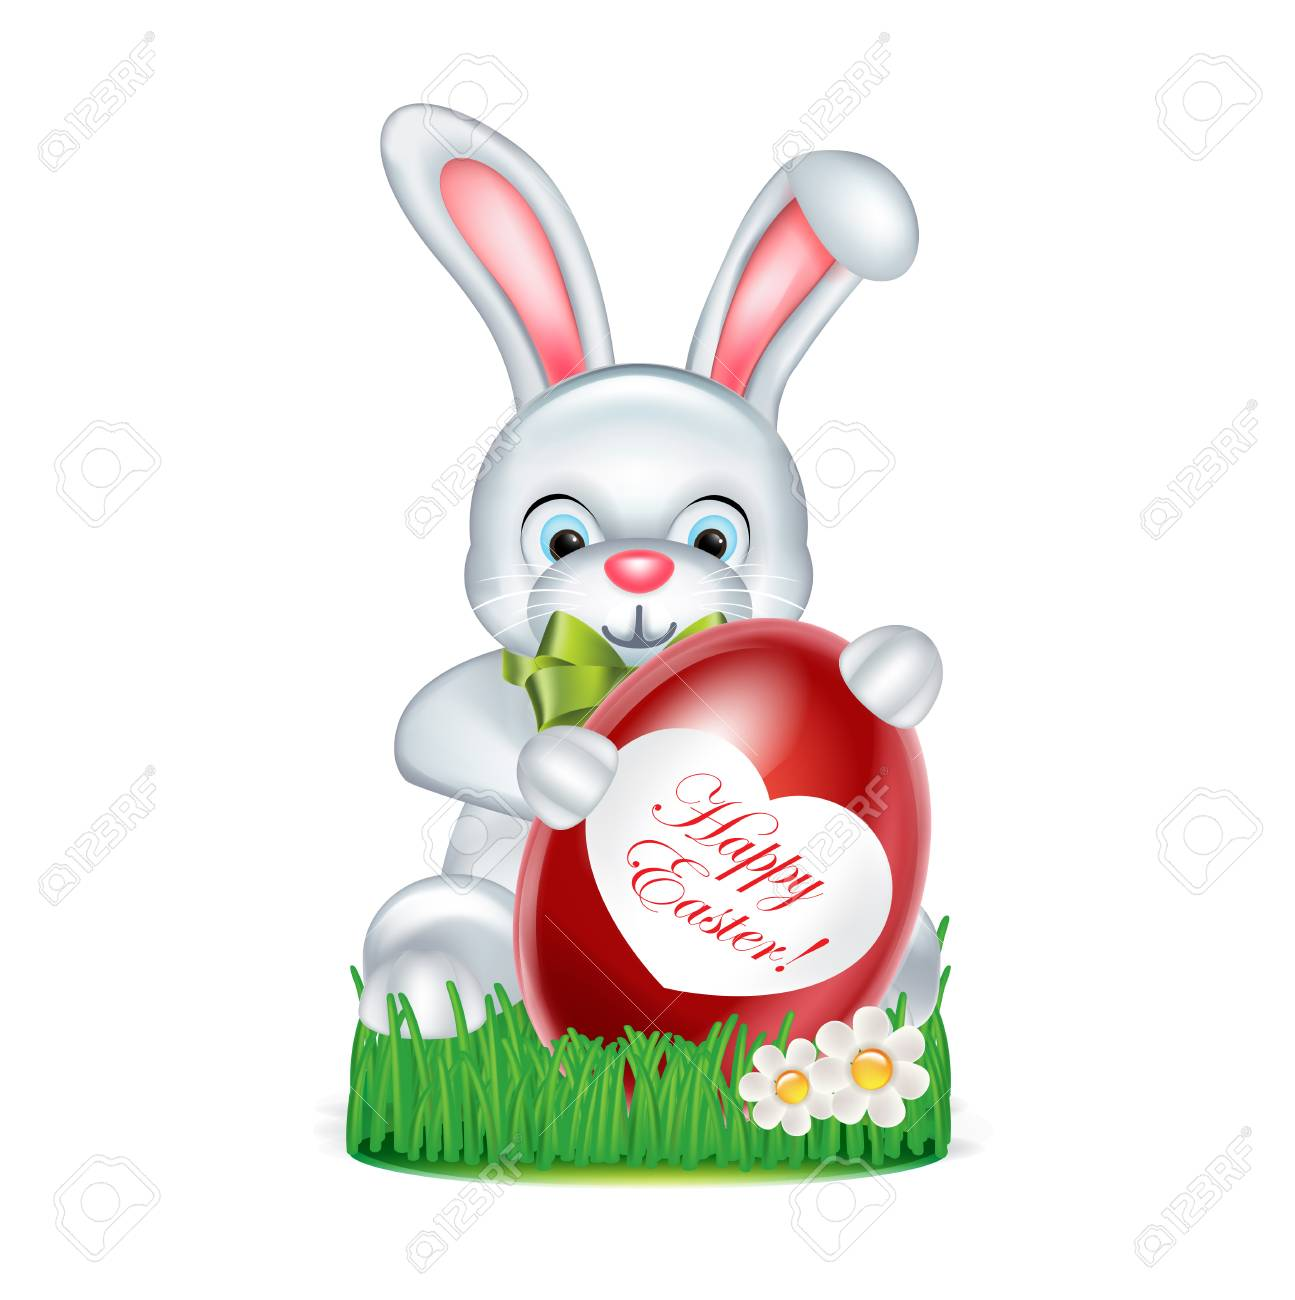 easter bunny with red egg standing on green grass with happy easter message stock vector